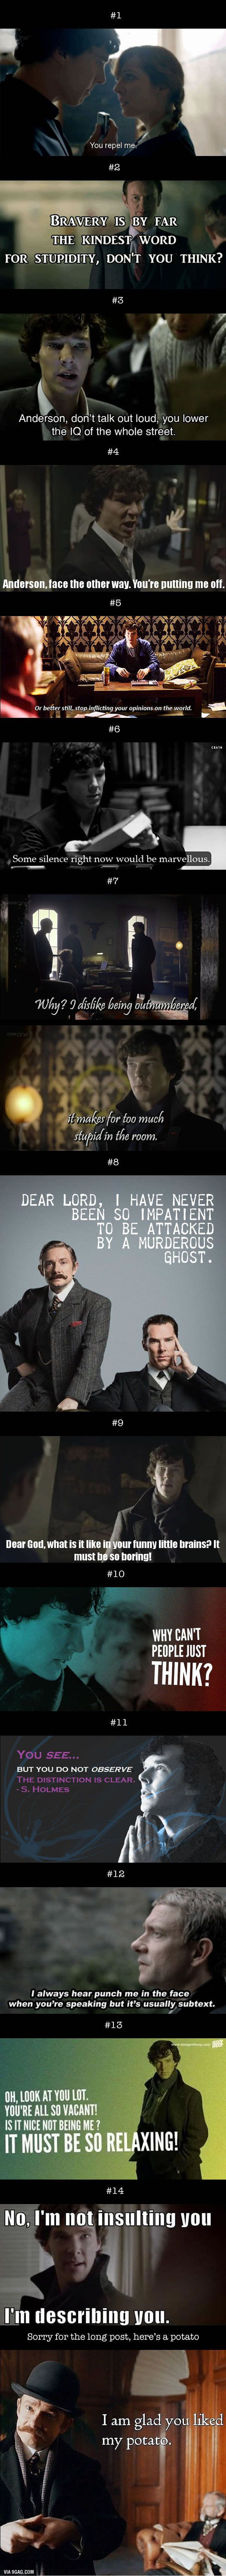 Today Is Sherlock Holmes Day! Here Are 14 Sherlock Insults To Crush Your Enemies - 9GAG